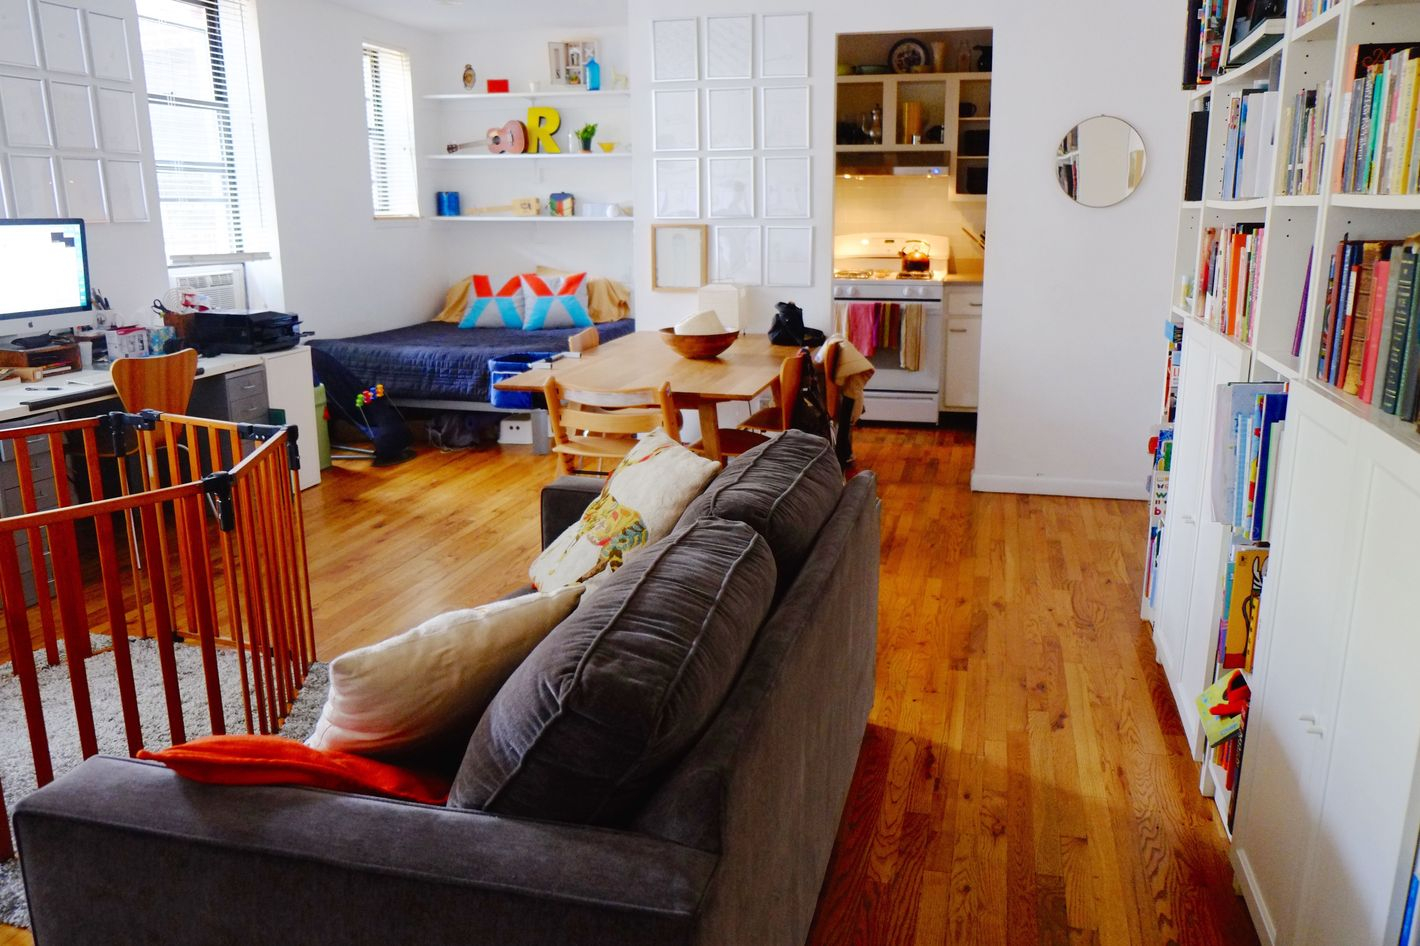 4 People, 650 Square Feet: A Love Story